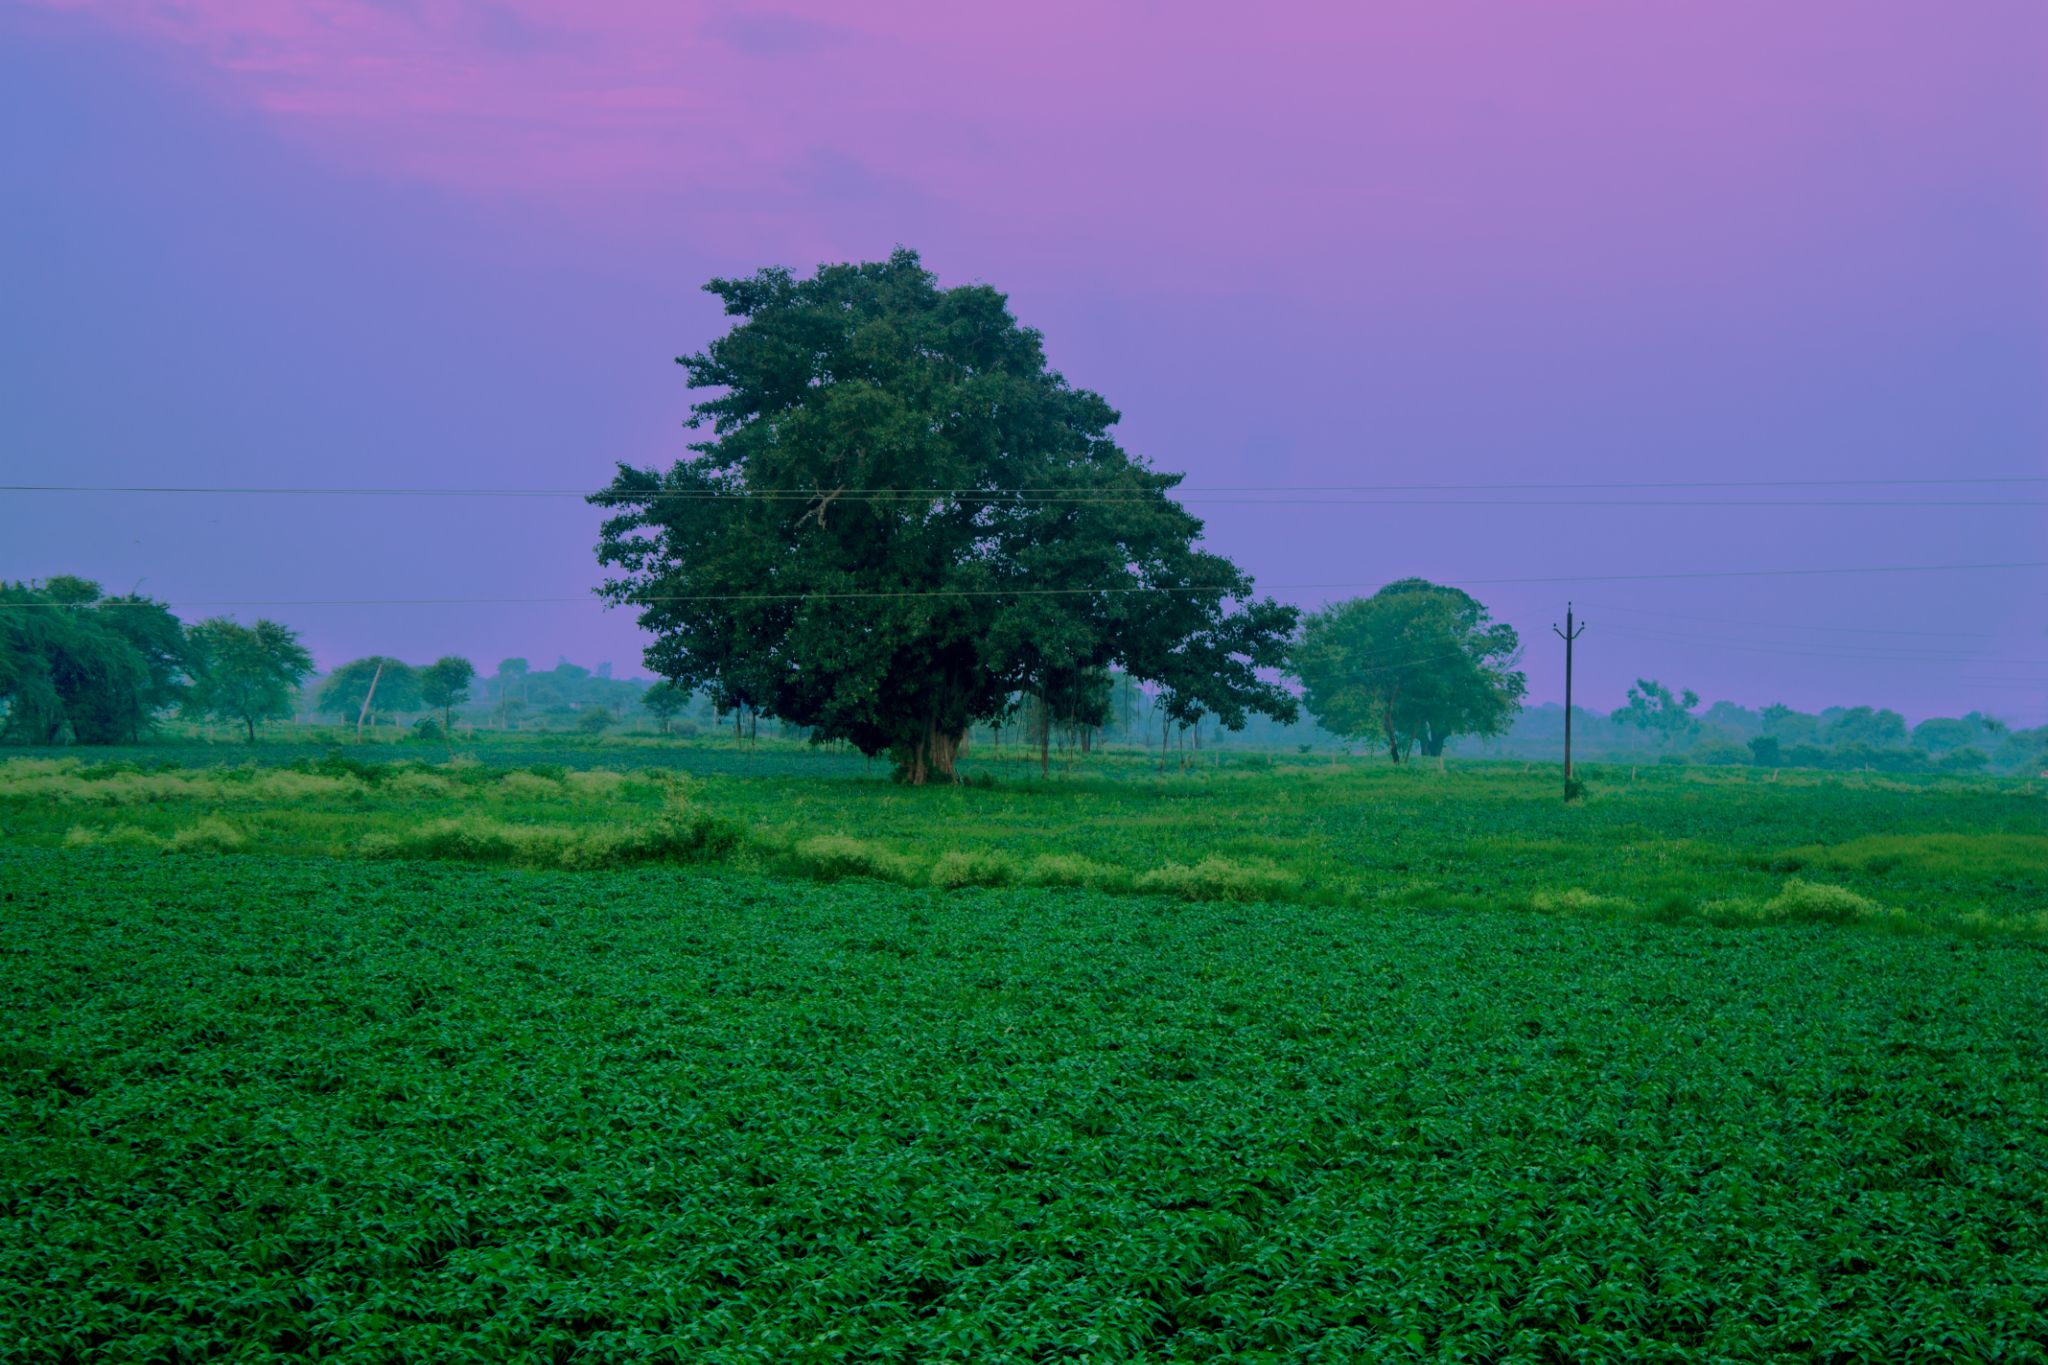 Evening Hues by Abhishek